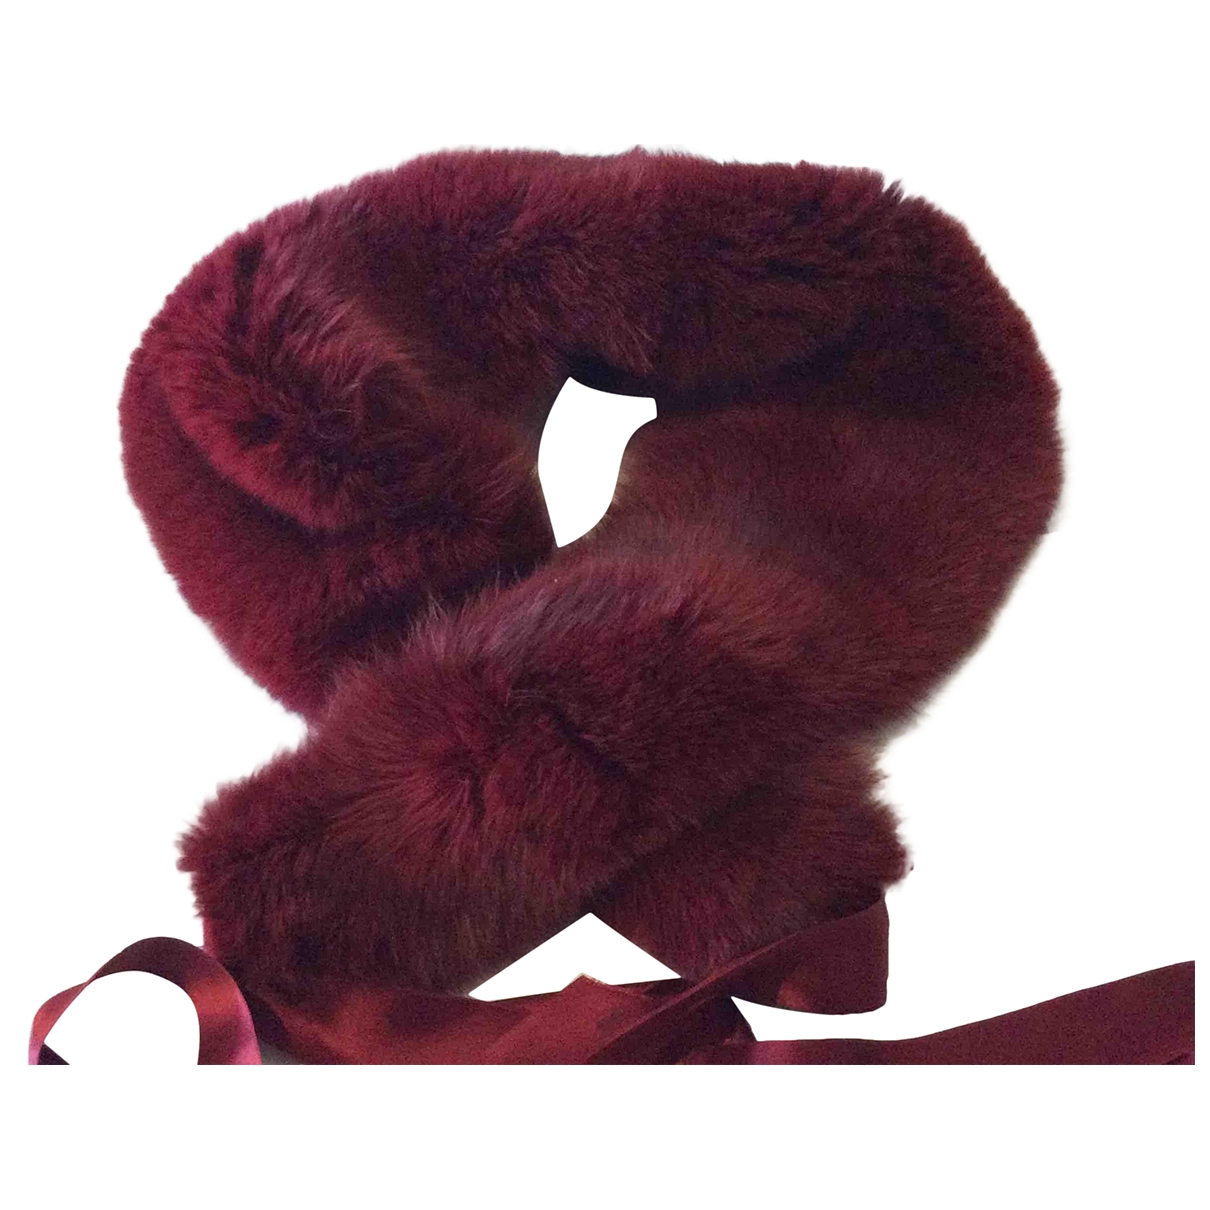 Non Signé / Unsigned \N Burgundy Fox scarf for Women \N